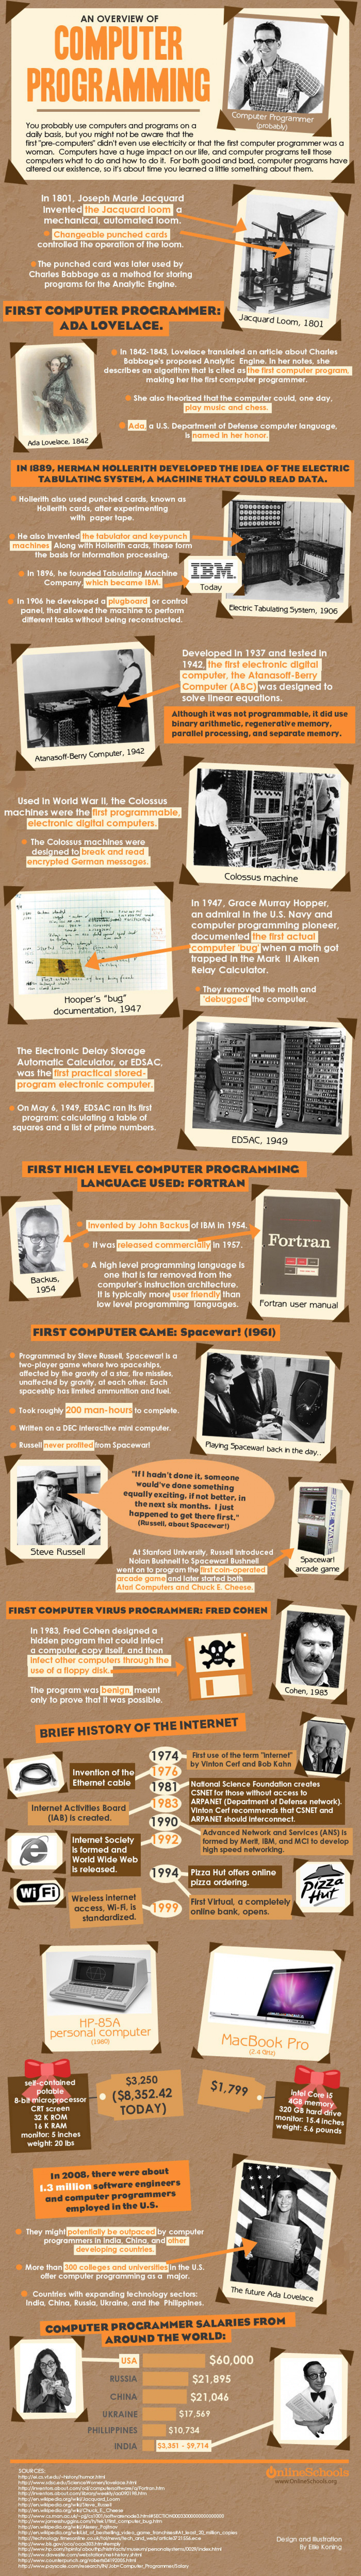 The History Of Computer Programming Infographic